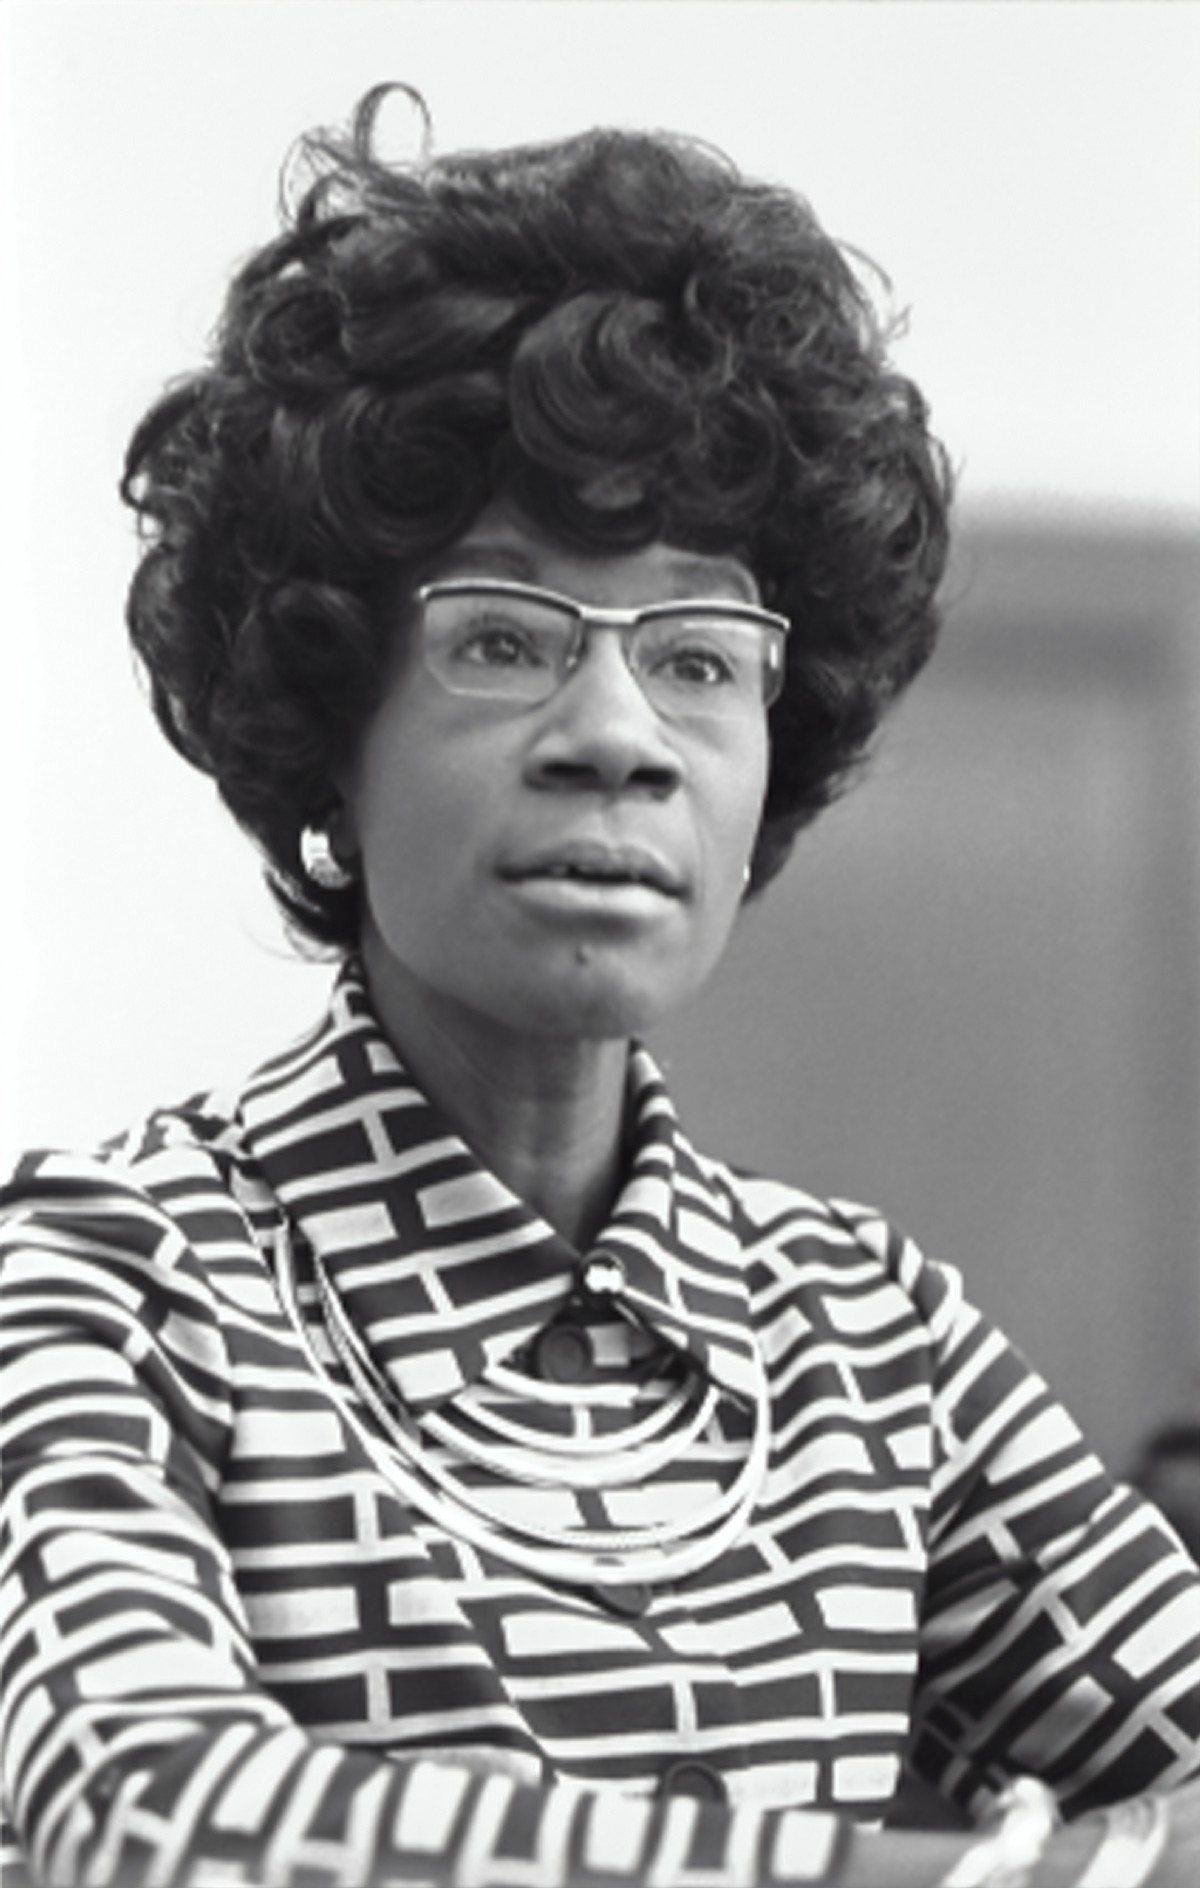 Black Women Brought The Votes To Put Dem Men In Office, But They Won't Vote To Put One In…